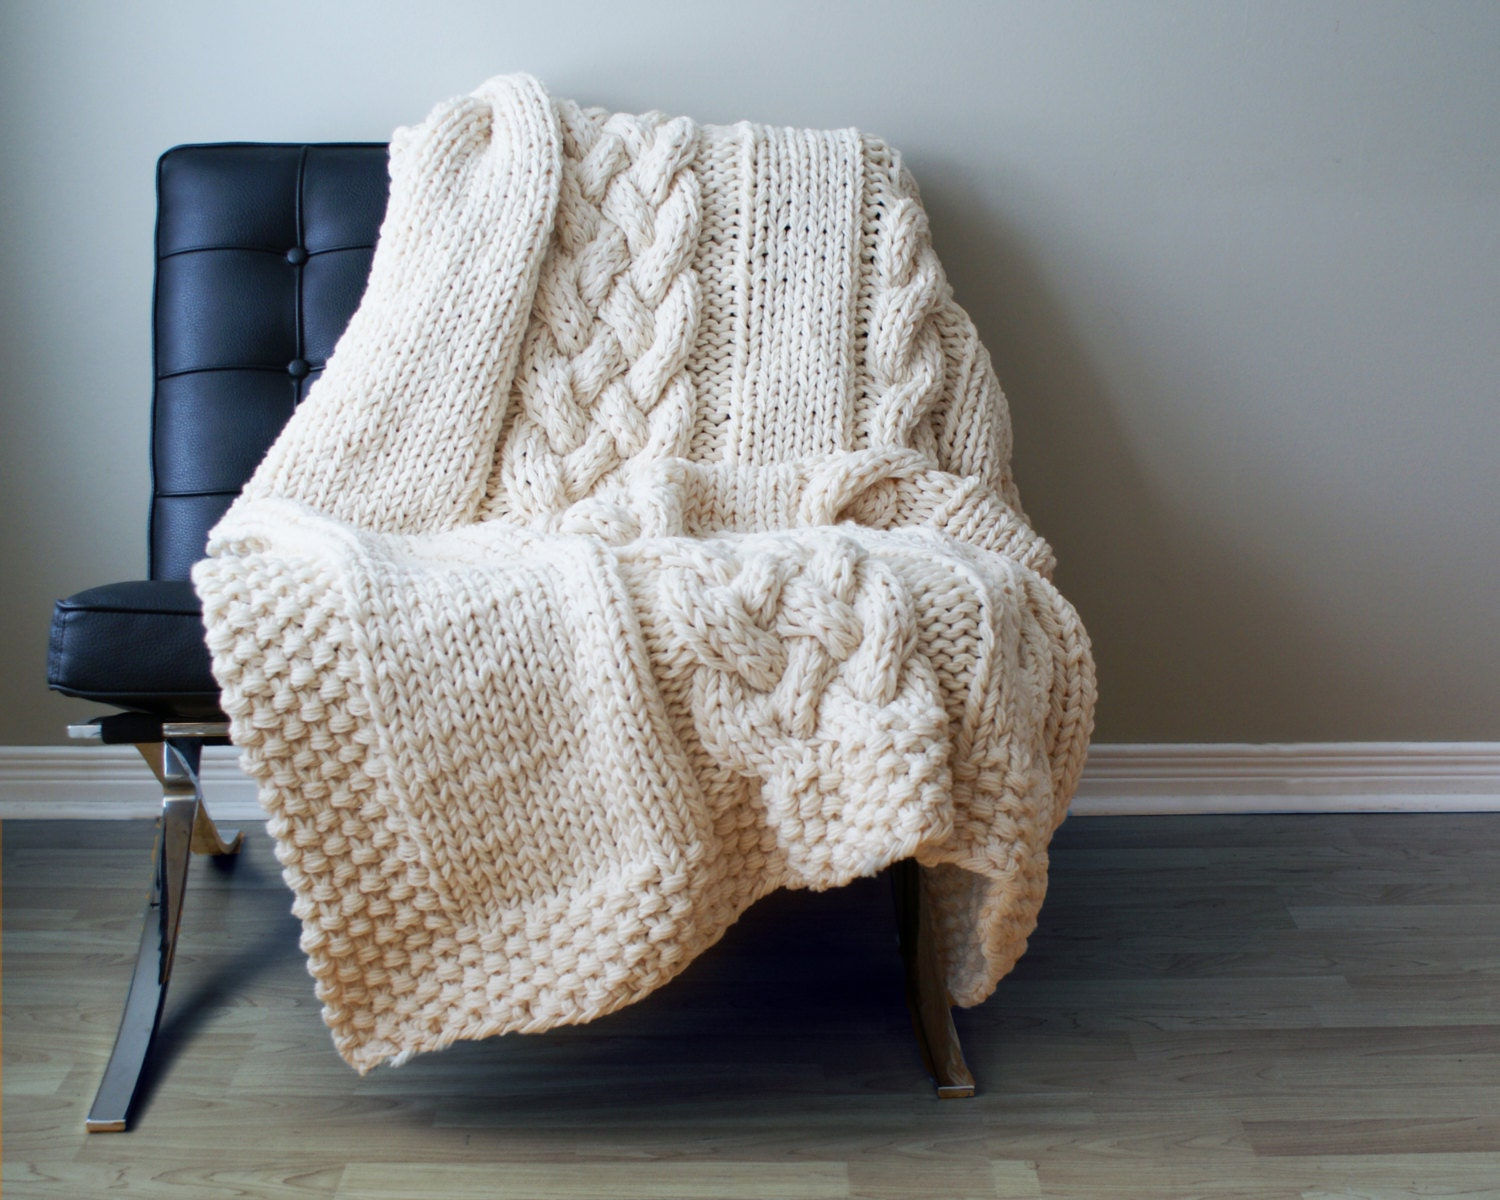 Free Knitting Patterns For Super Chunky Wool : DIY Knitting PATTERN Throw Blanket / Rug Super Chunky Double